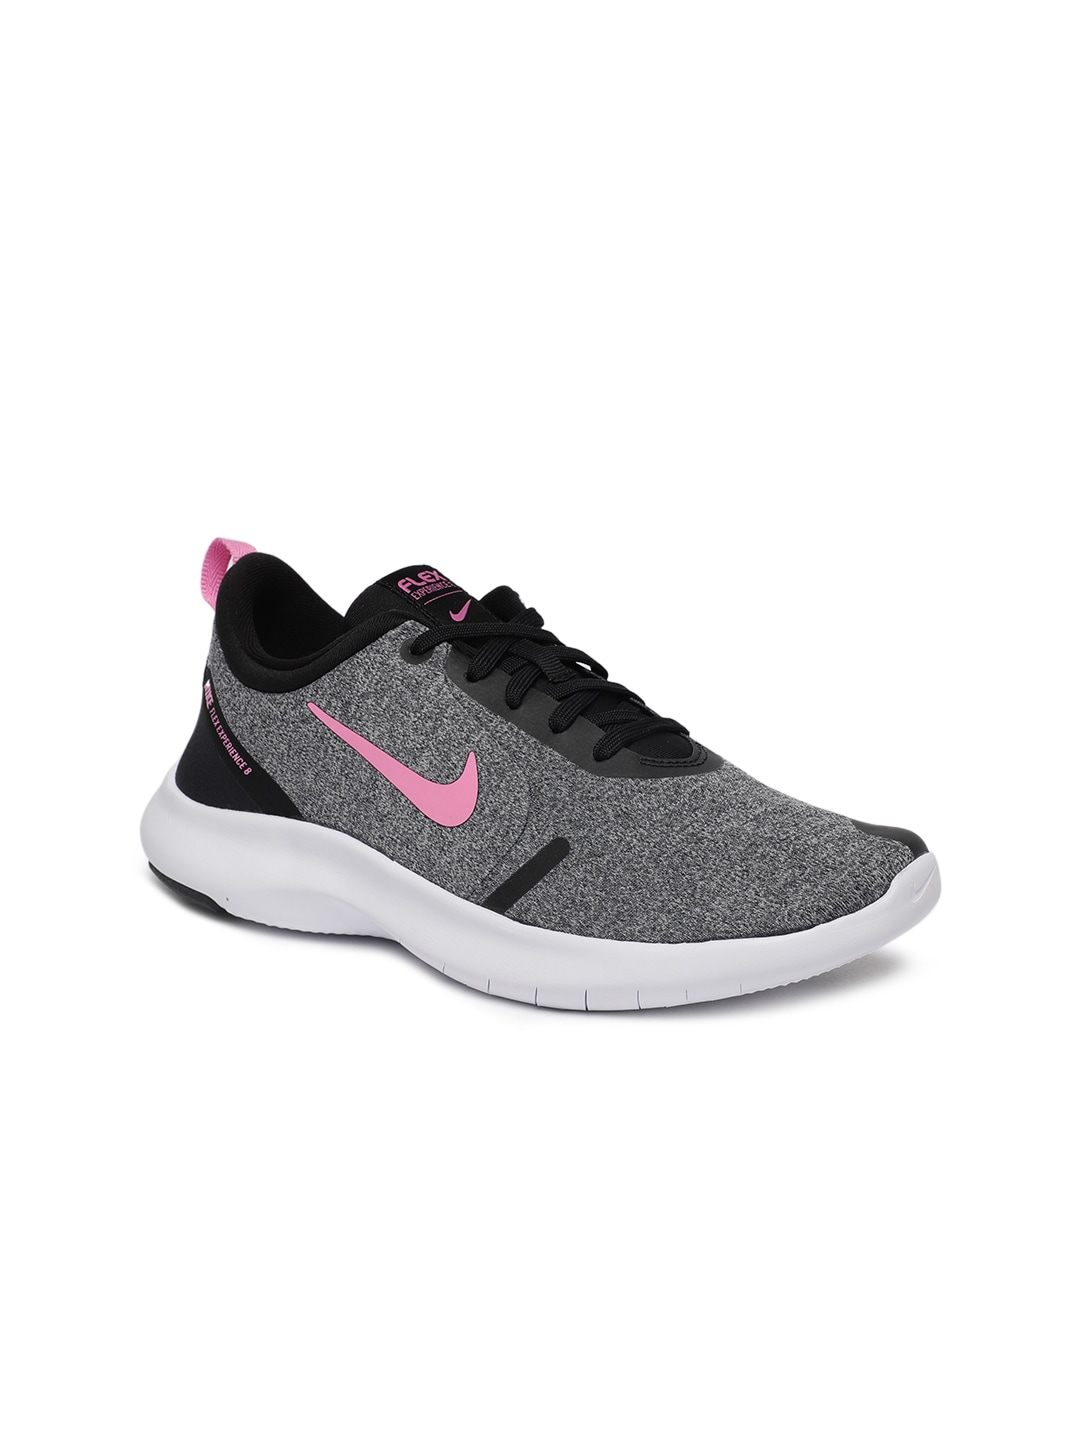 63f037428c6 Nike Sport Shoe - Buy Nike Sport Shoes At Best Price Online